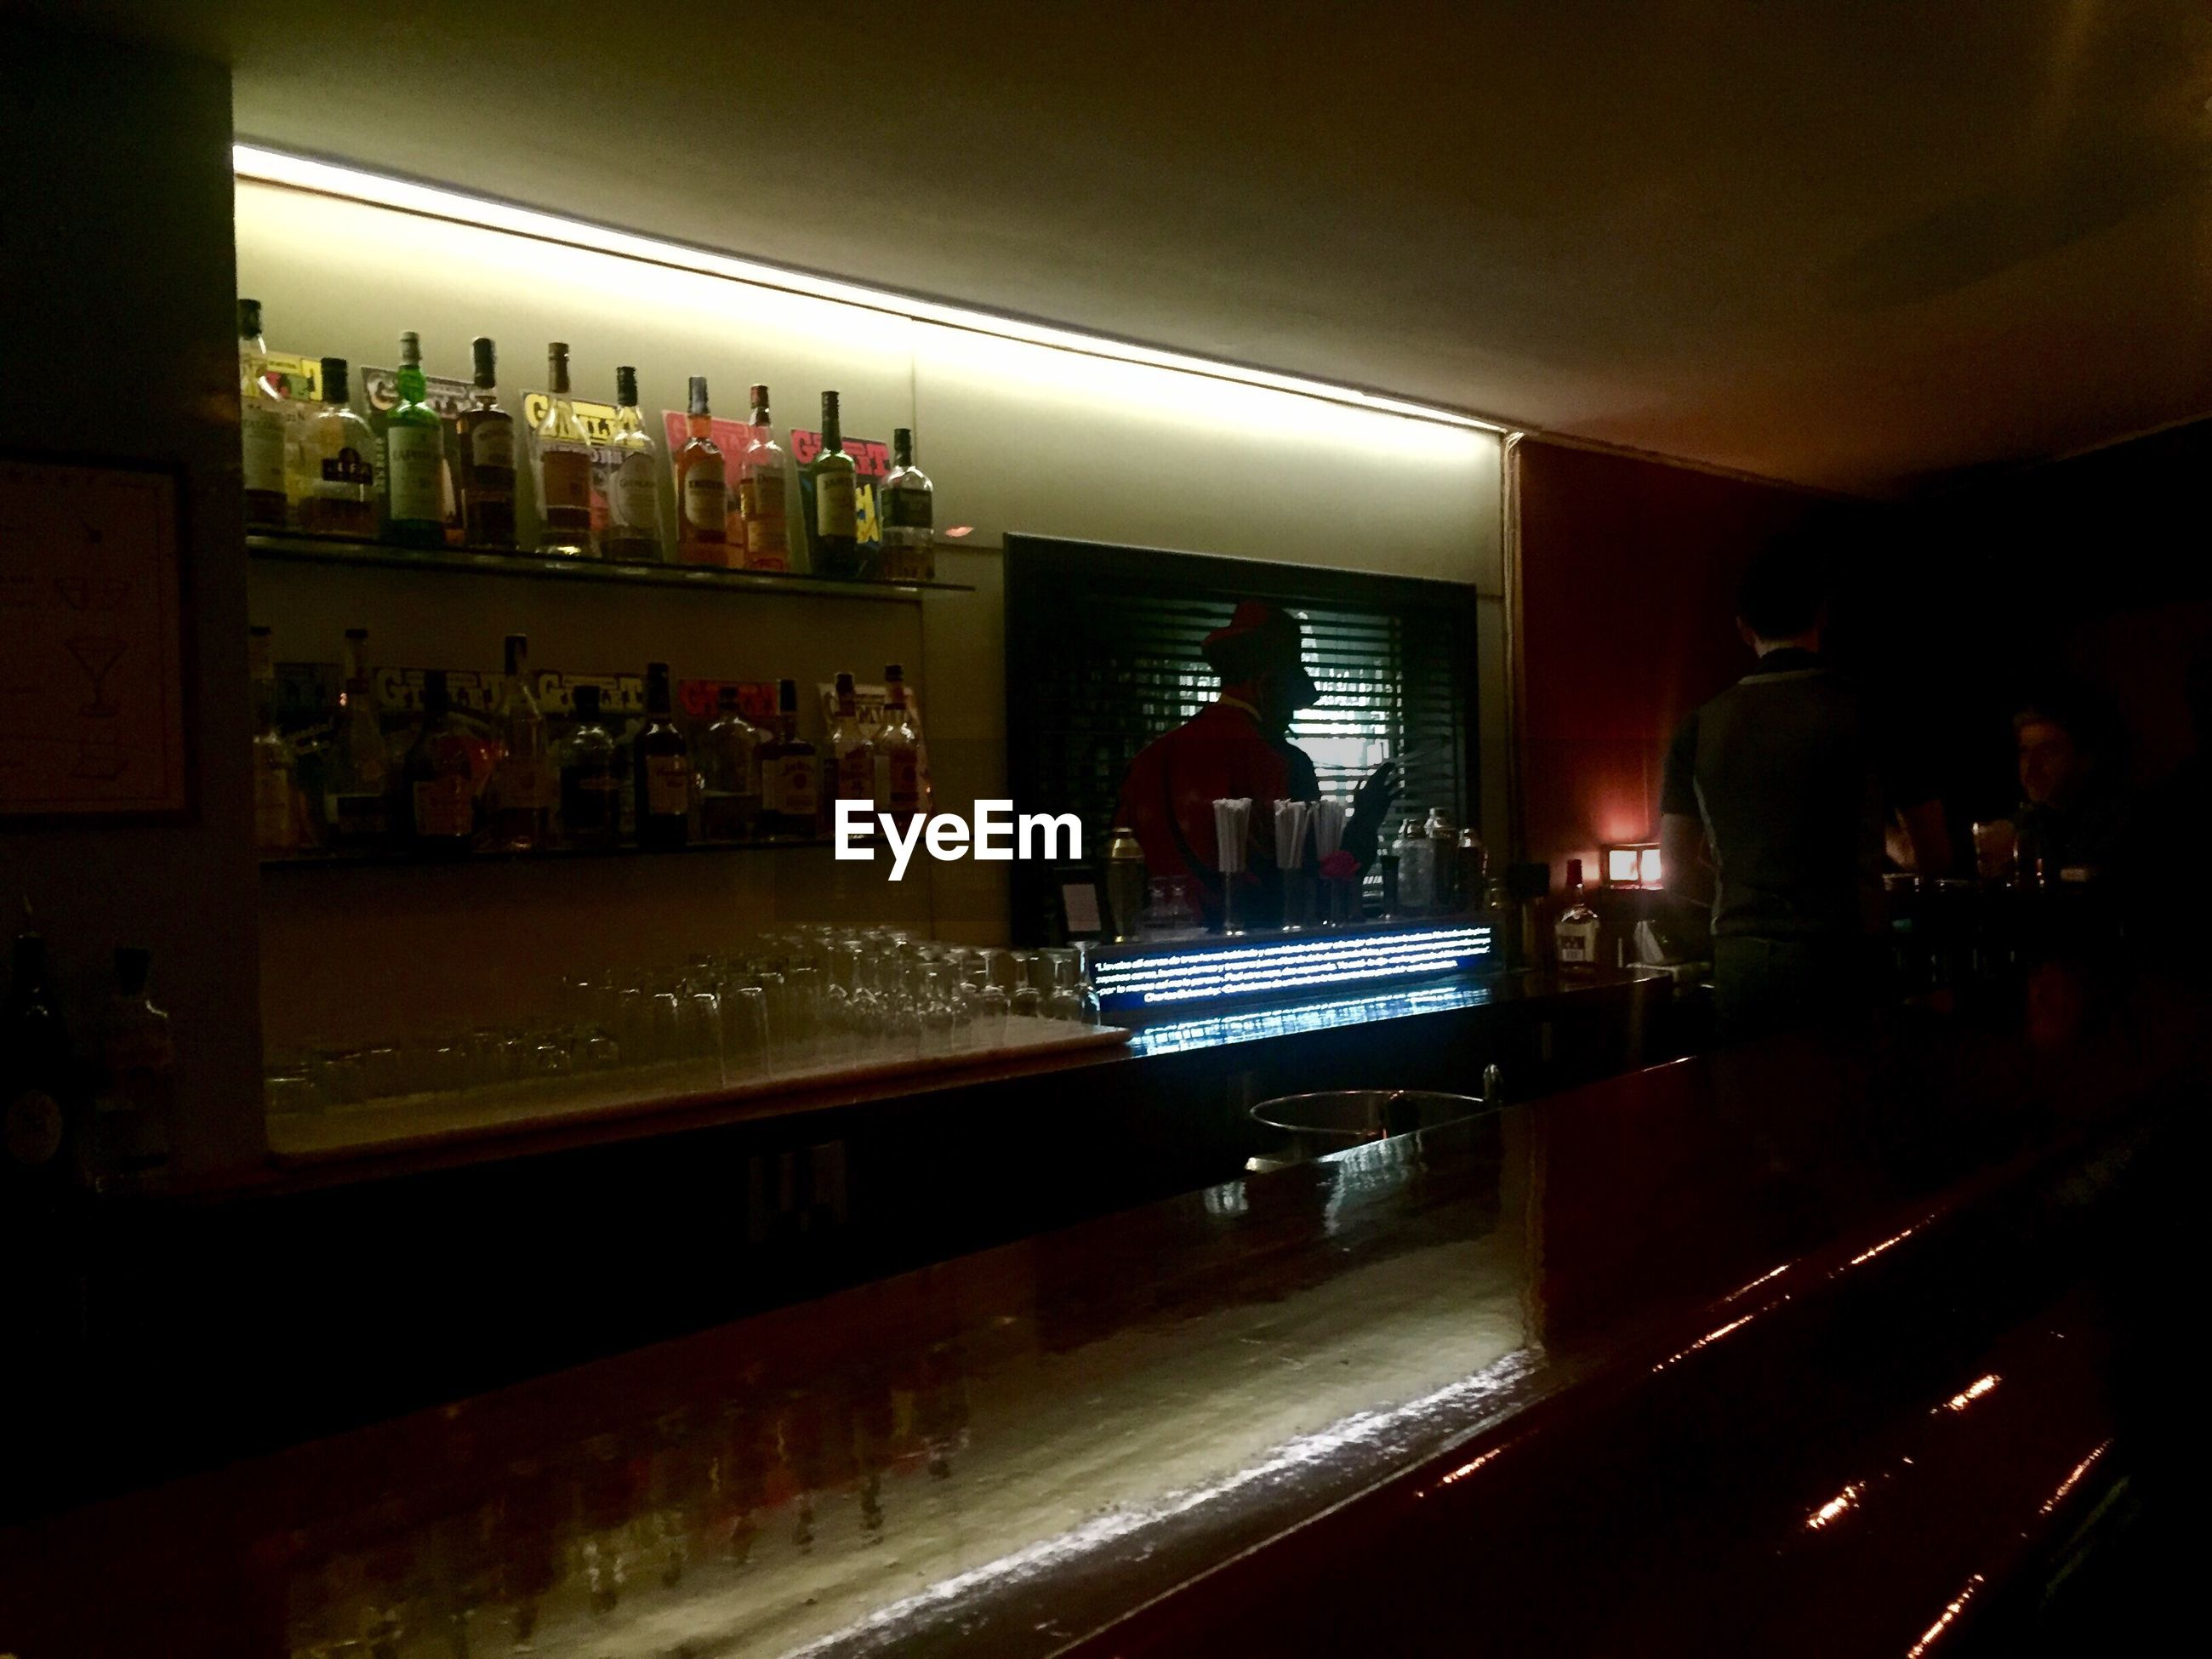 indoors, bar counter, bar - drink establishment, alcohol, illuminated, shelf, food and drink, bottle, night, drink, cocktail, no people